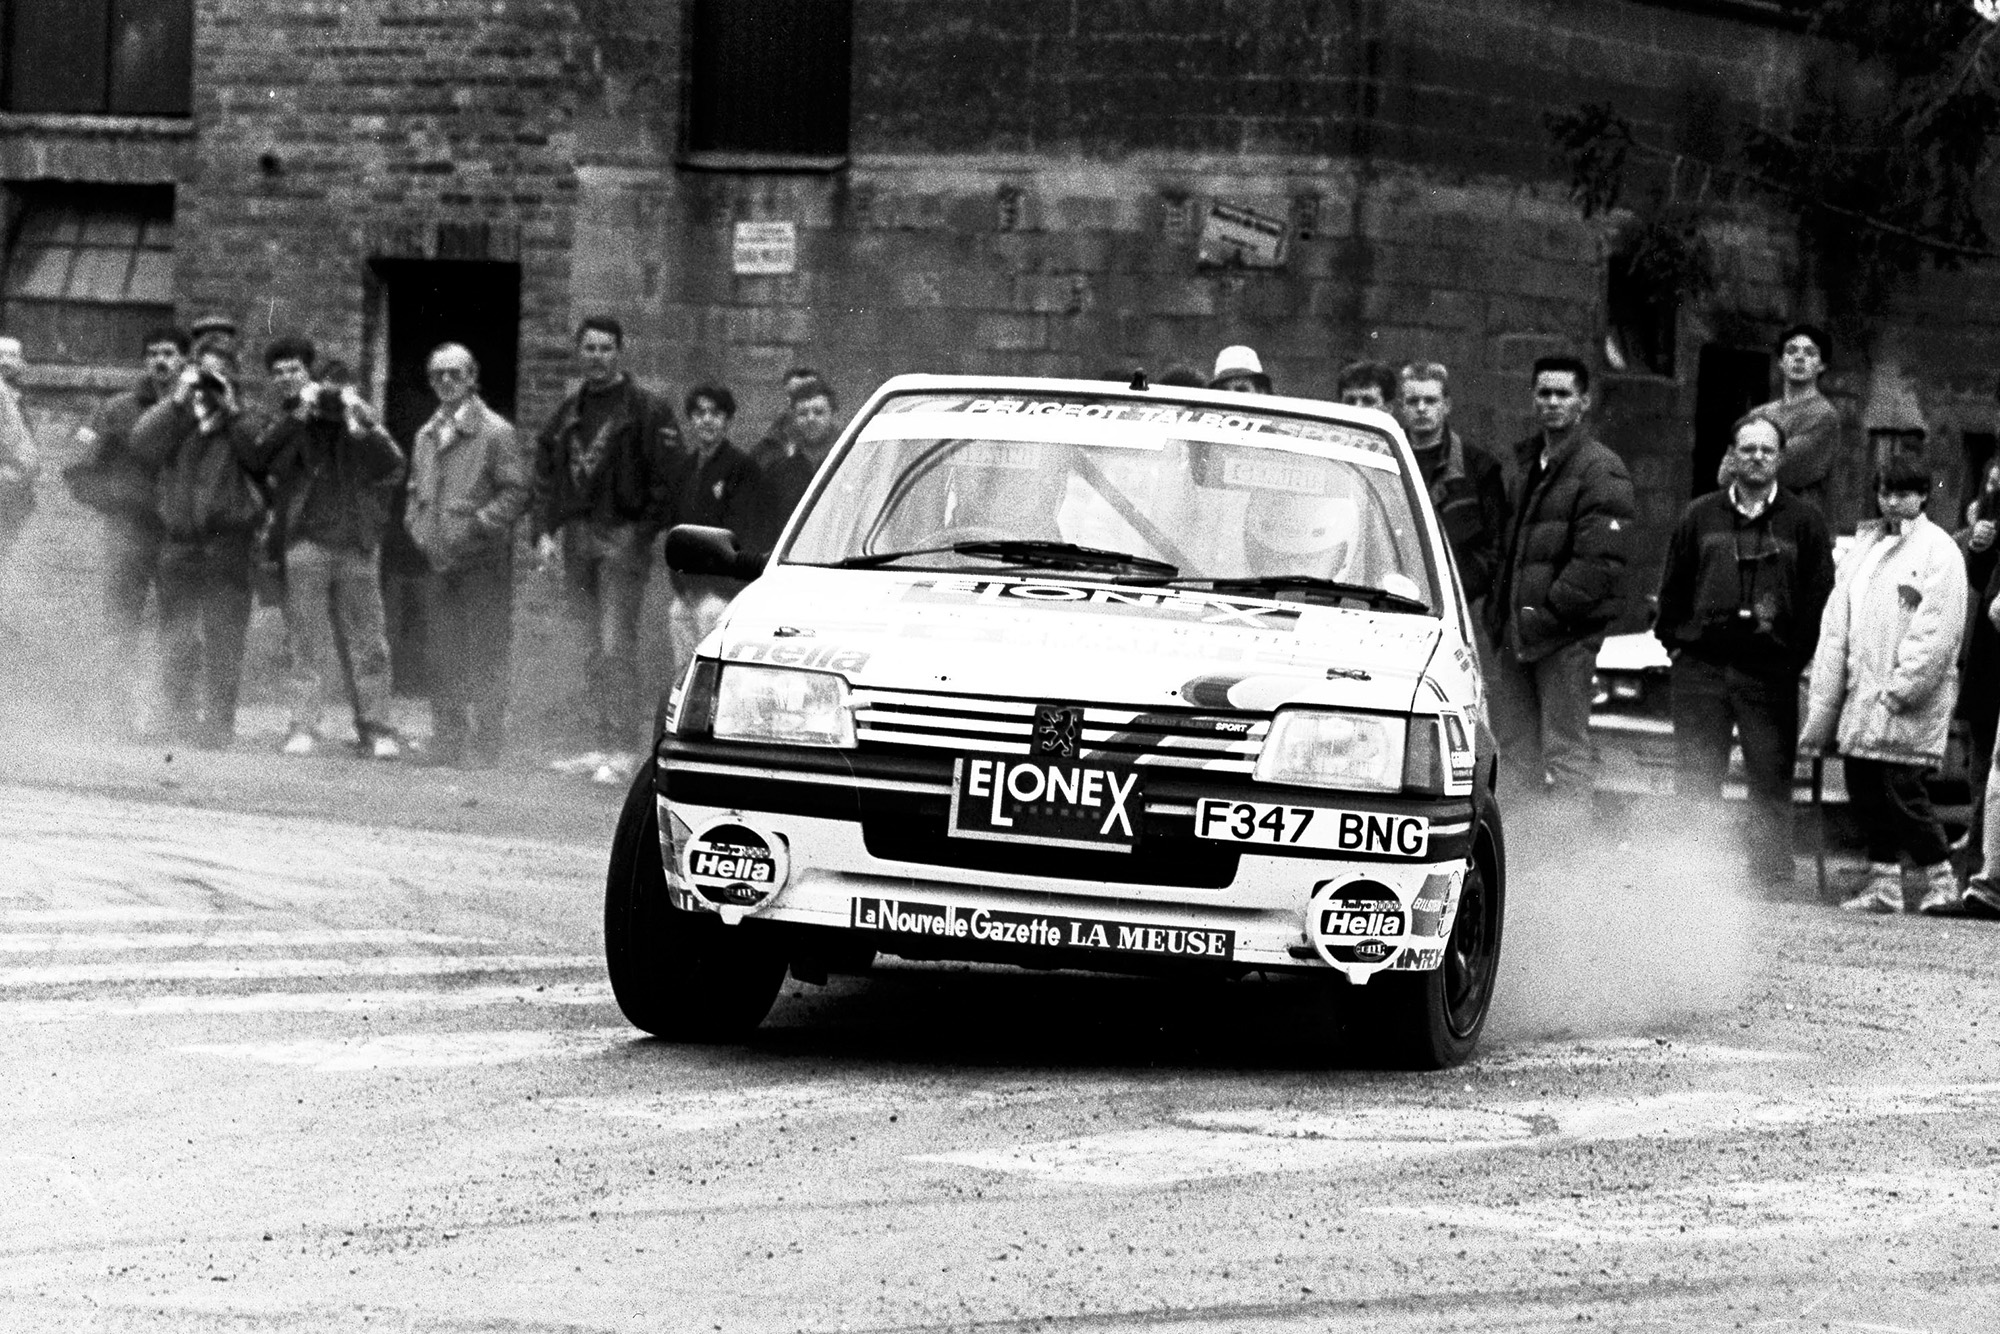 Richard Burns cornering in a Peugeot 205 at Circuit Ardennes in 1991